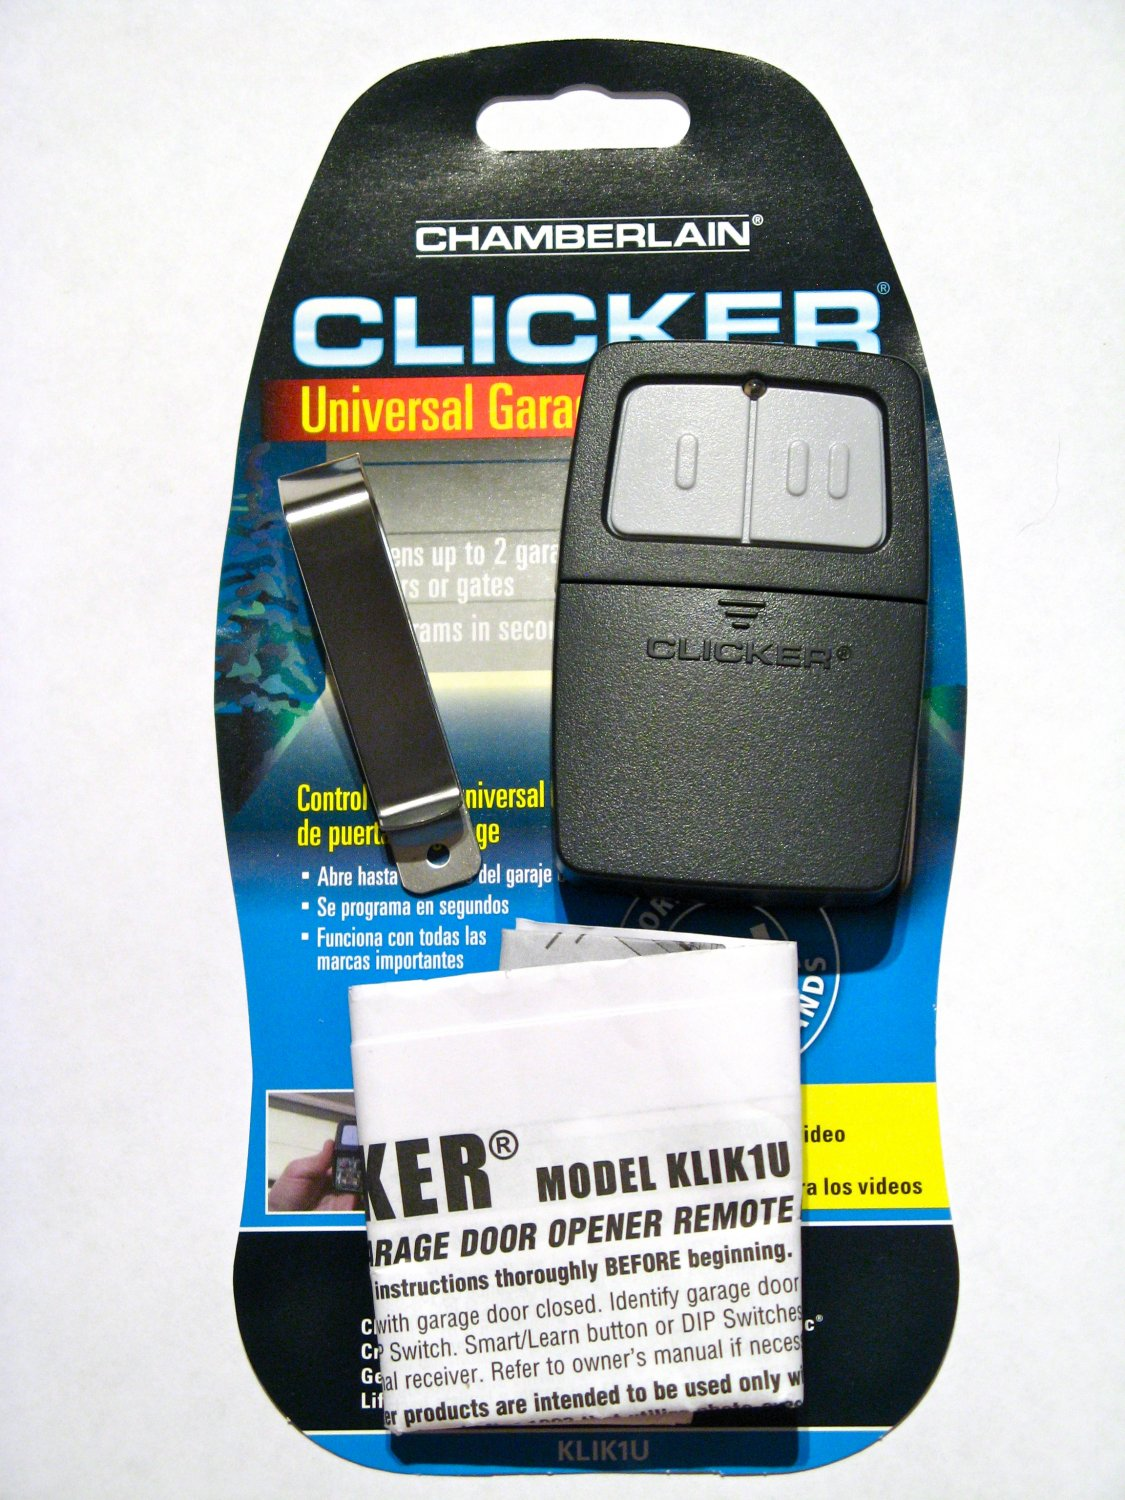 chamberlain garage door opener remote programming instructions